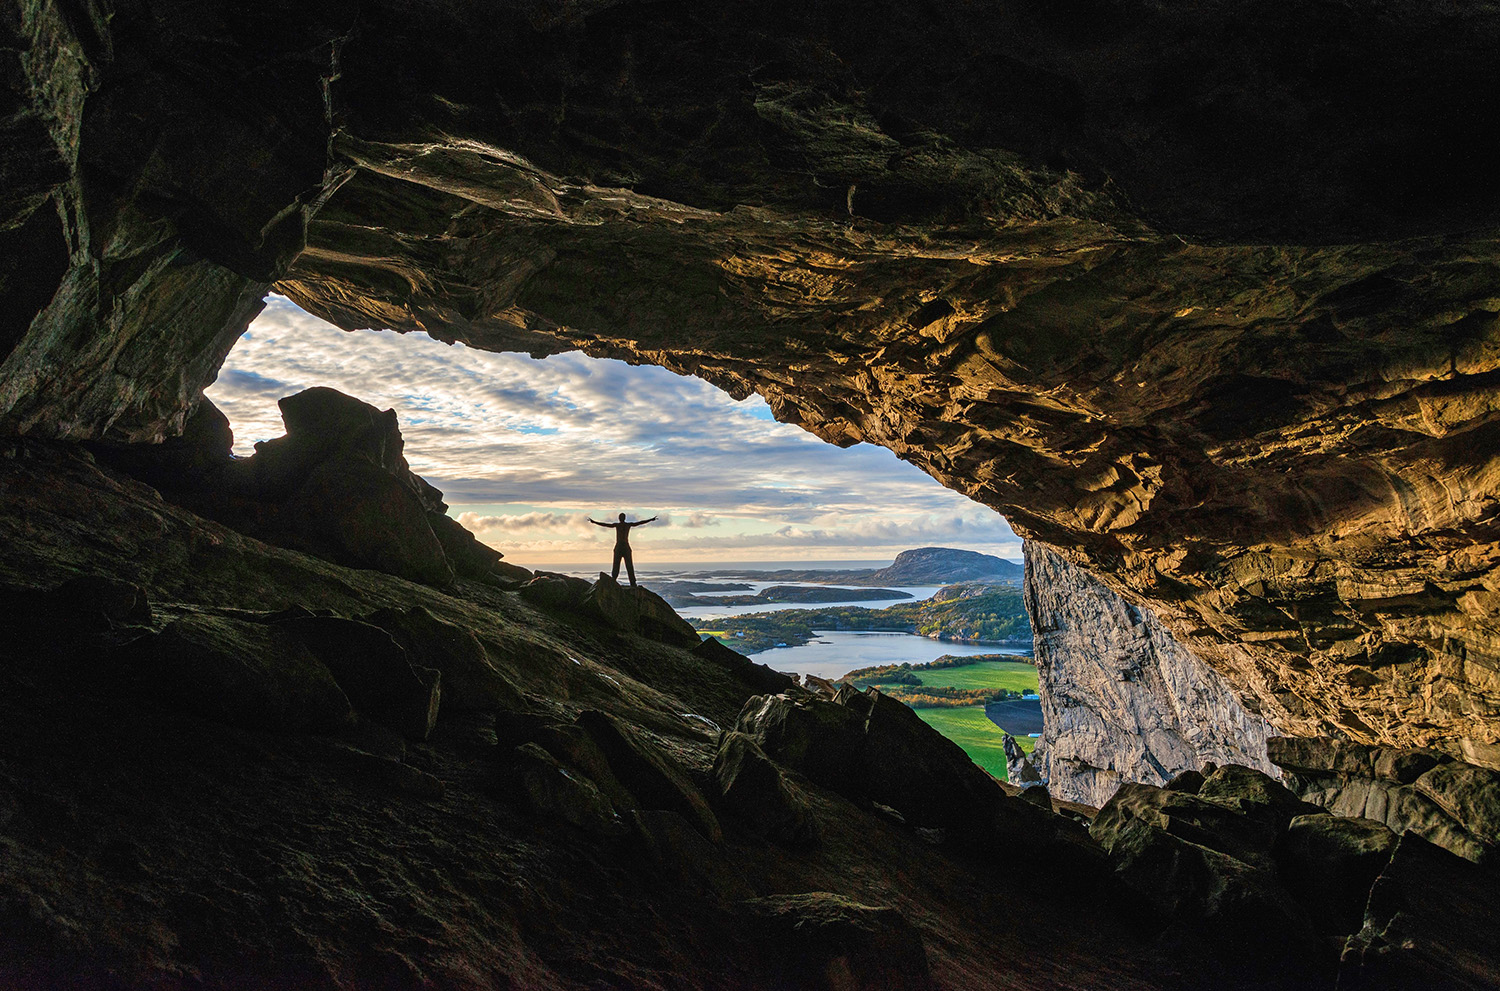 Hanshelleren coastal cave is one of the largest in northern Europe and home of the worlds hardest sports climbing route (9B+) set in 2016 by the Chezk climber Adam Ondra.